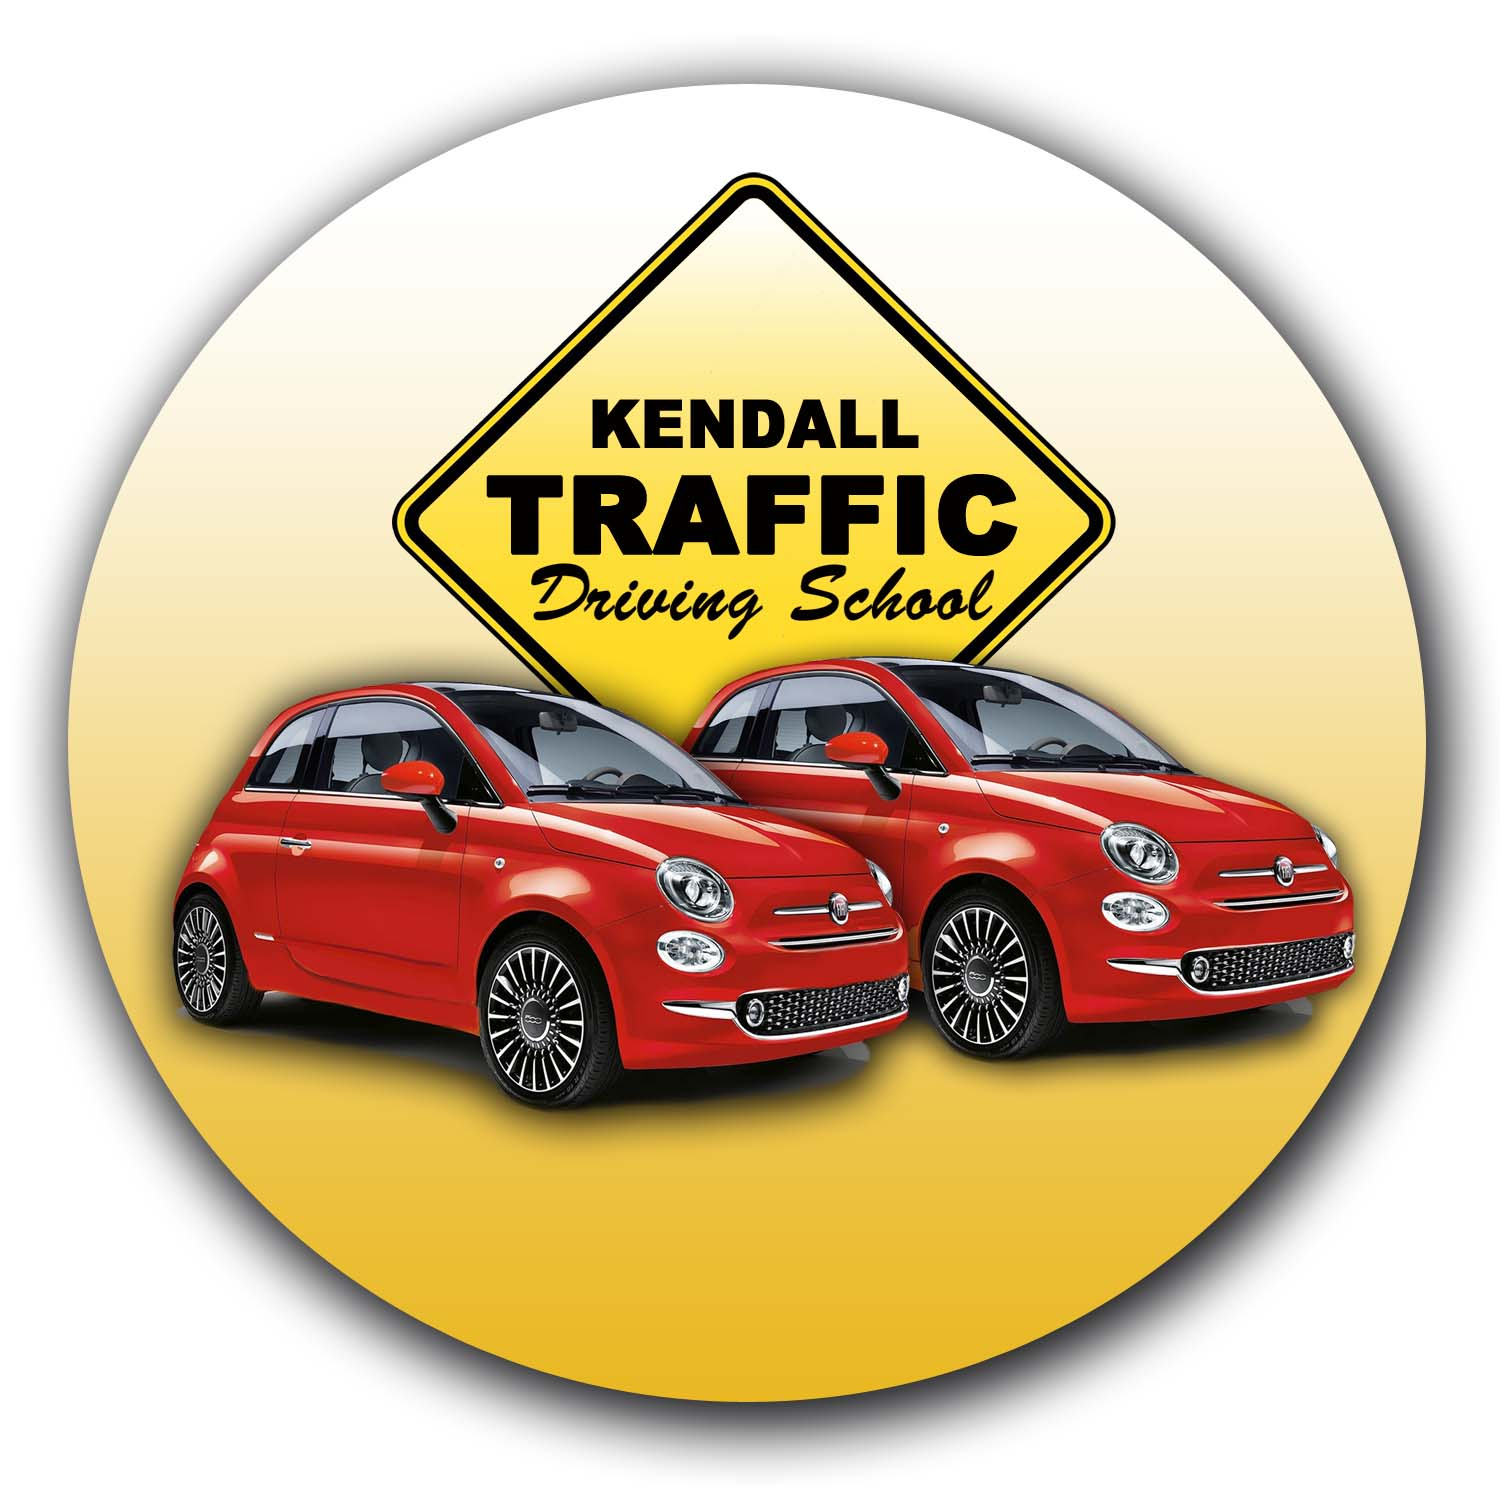 Kendall Traffic and Driving School